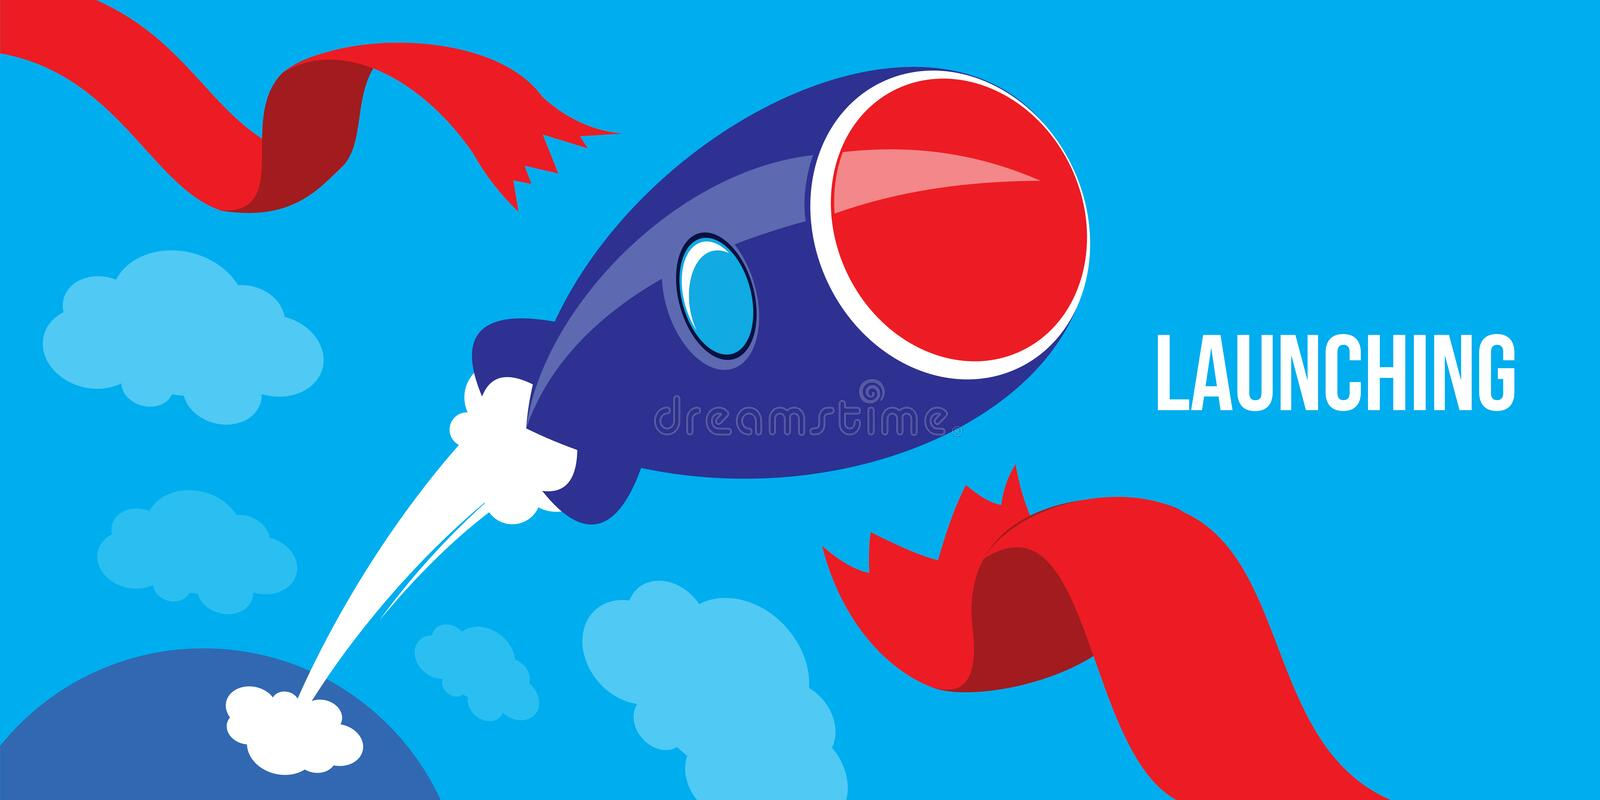 Launching Ideas. Startup Concept Flat Design Rocket Launch royalty free illustration